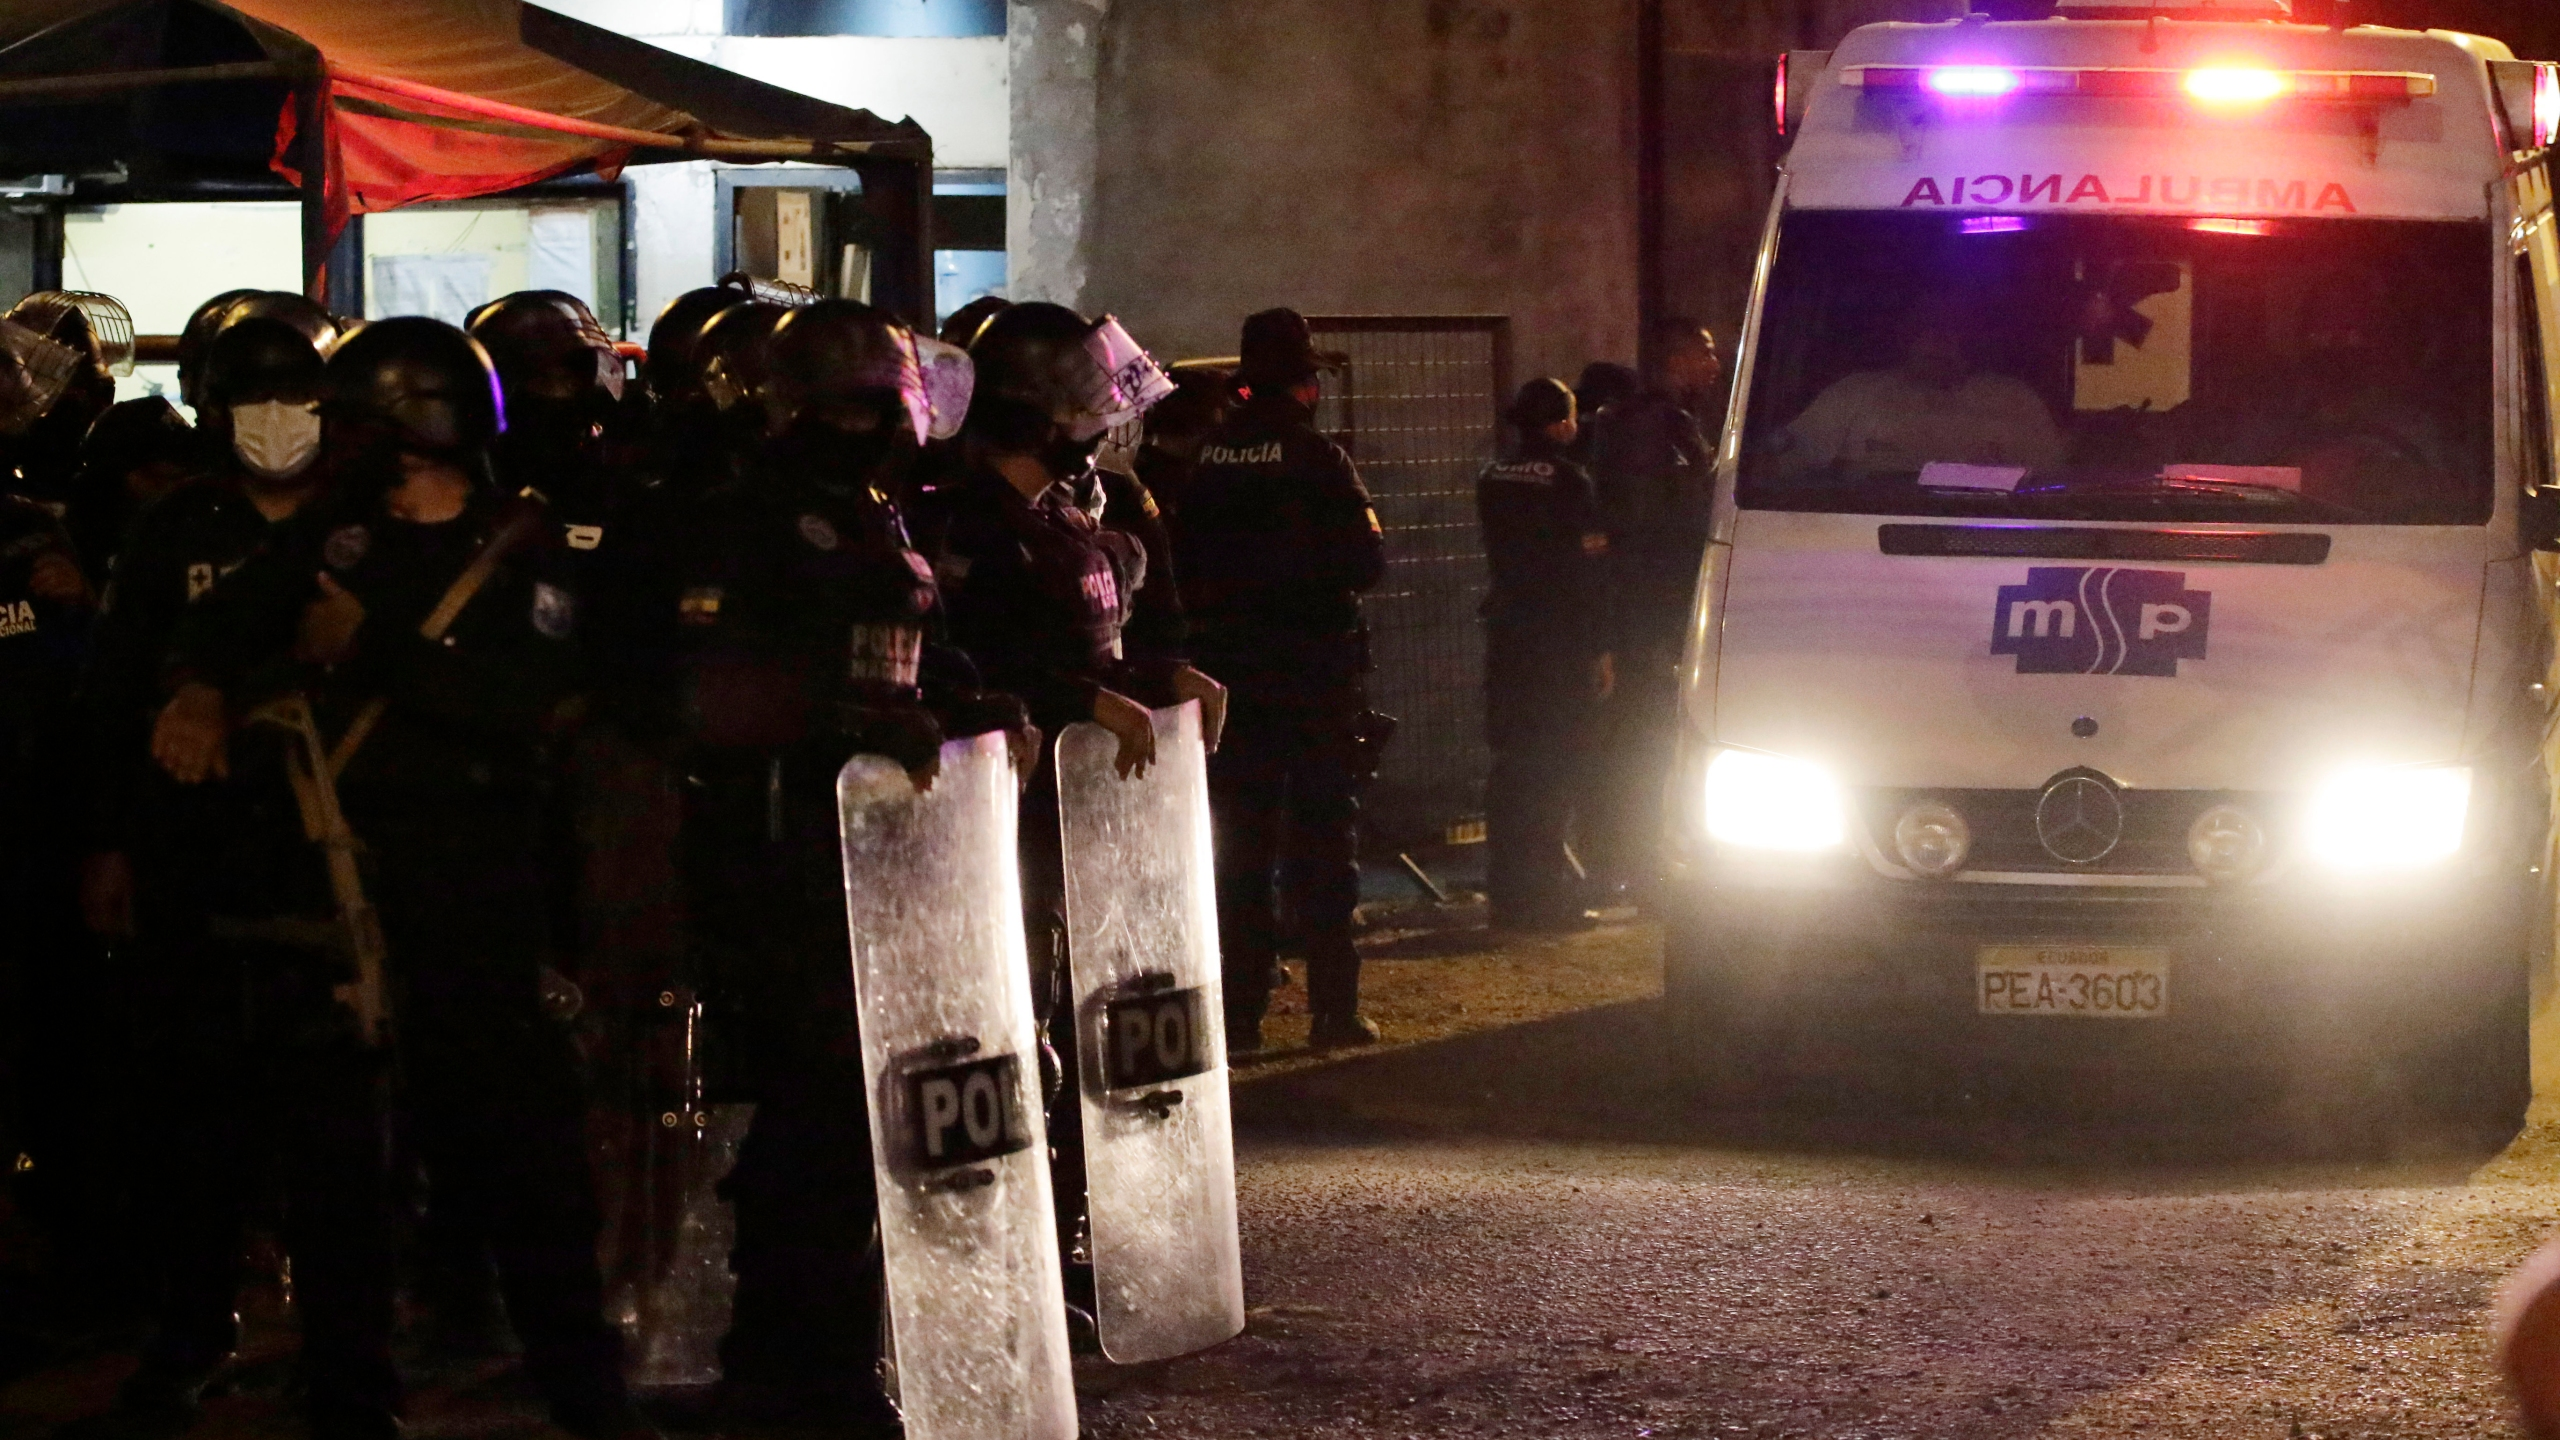 An ambulance leaves from the Litoral penitentiary after a riot, in Guayaquil, Ecuador on Sept. 28, 2021. (AP Photo/Angel DeJesus)